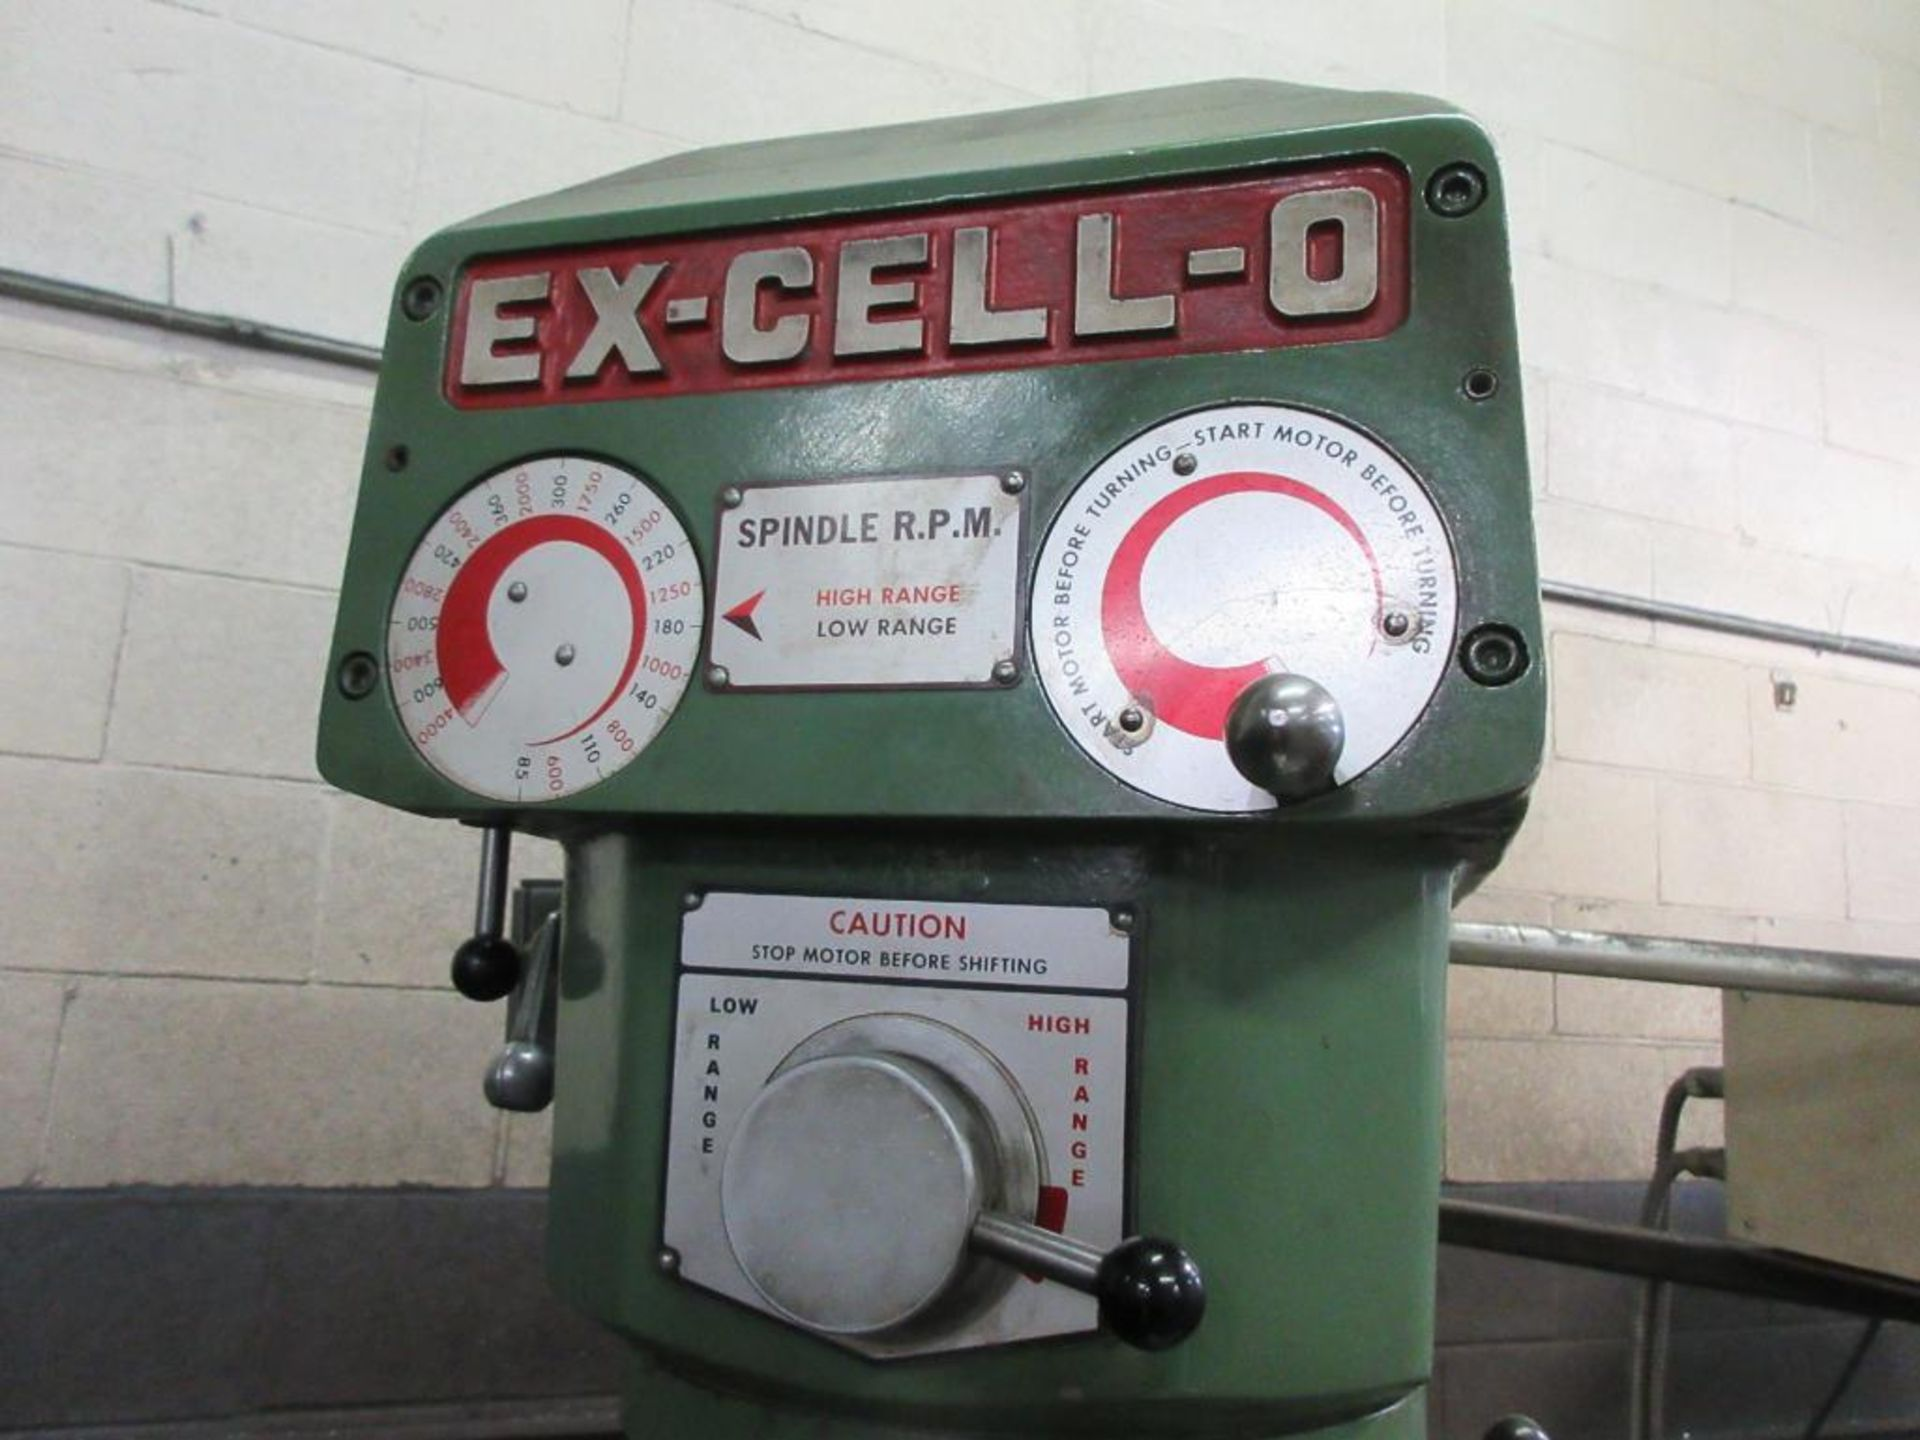 """EXCELLO MILL MODEL 602, 47""""X9"""" TABLE, 85-4000 RPM, MITUTOYO 2 AXIS DRO, COLLET STYLE , 2 BOXES - Image 4 of 6"""